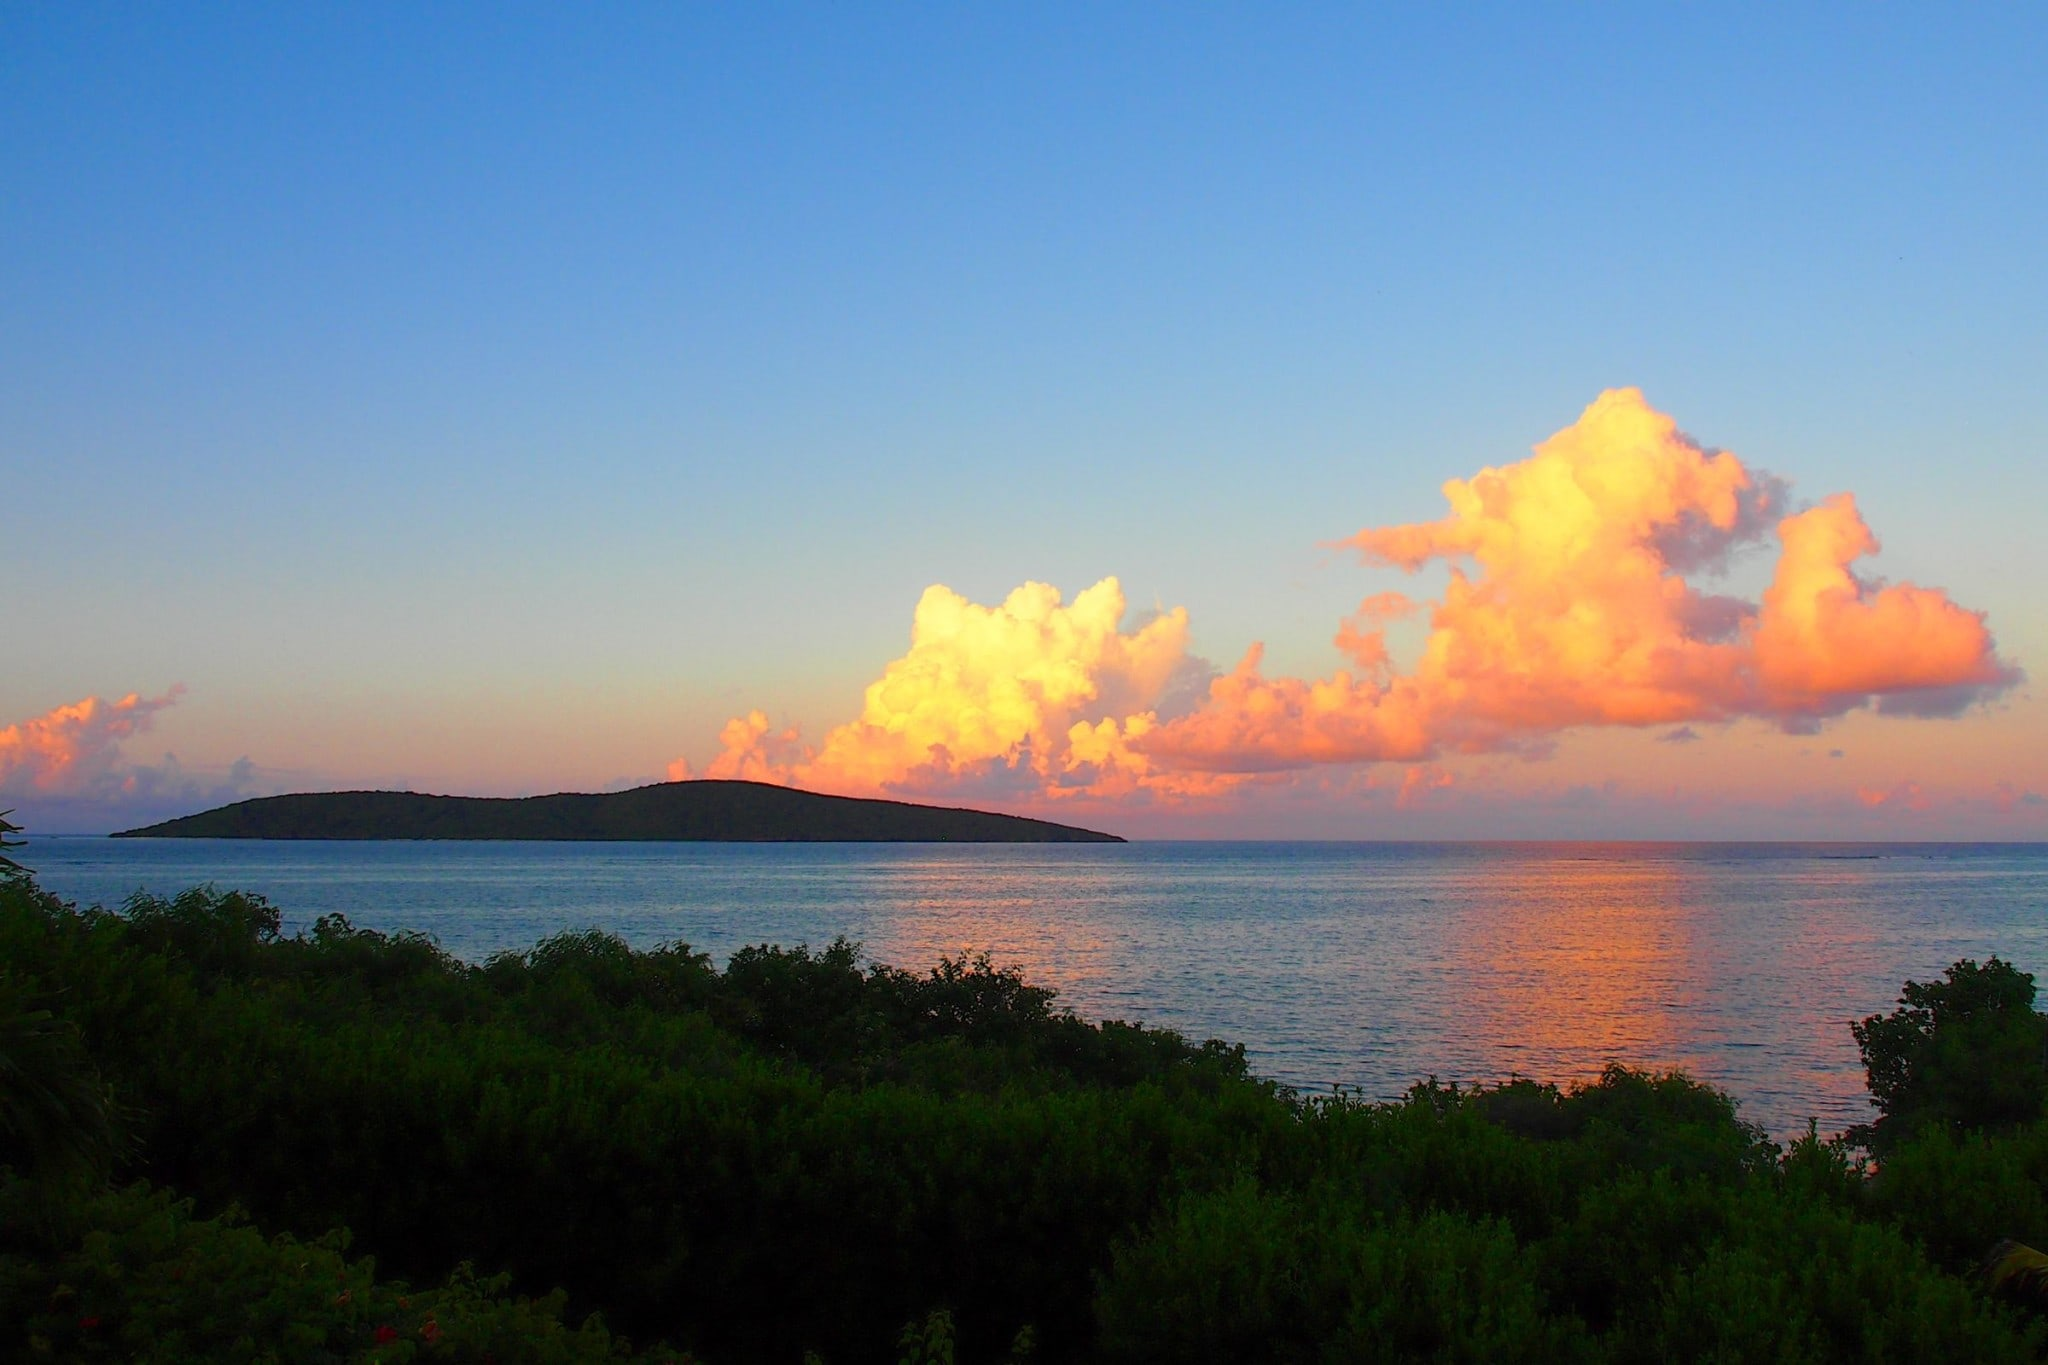 Sunset Clouds Over Buck Island from Solitude House, St. Croix